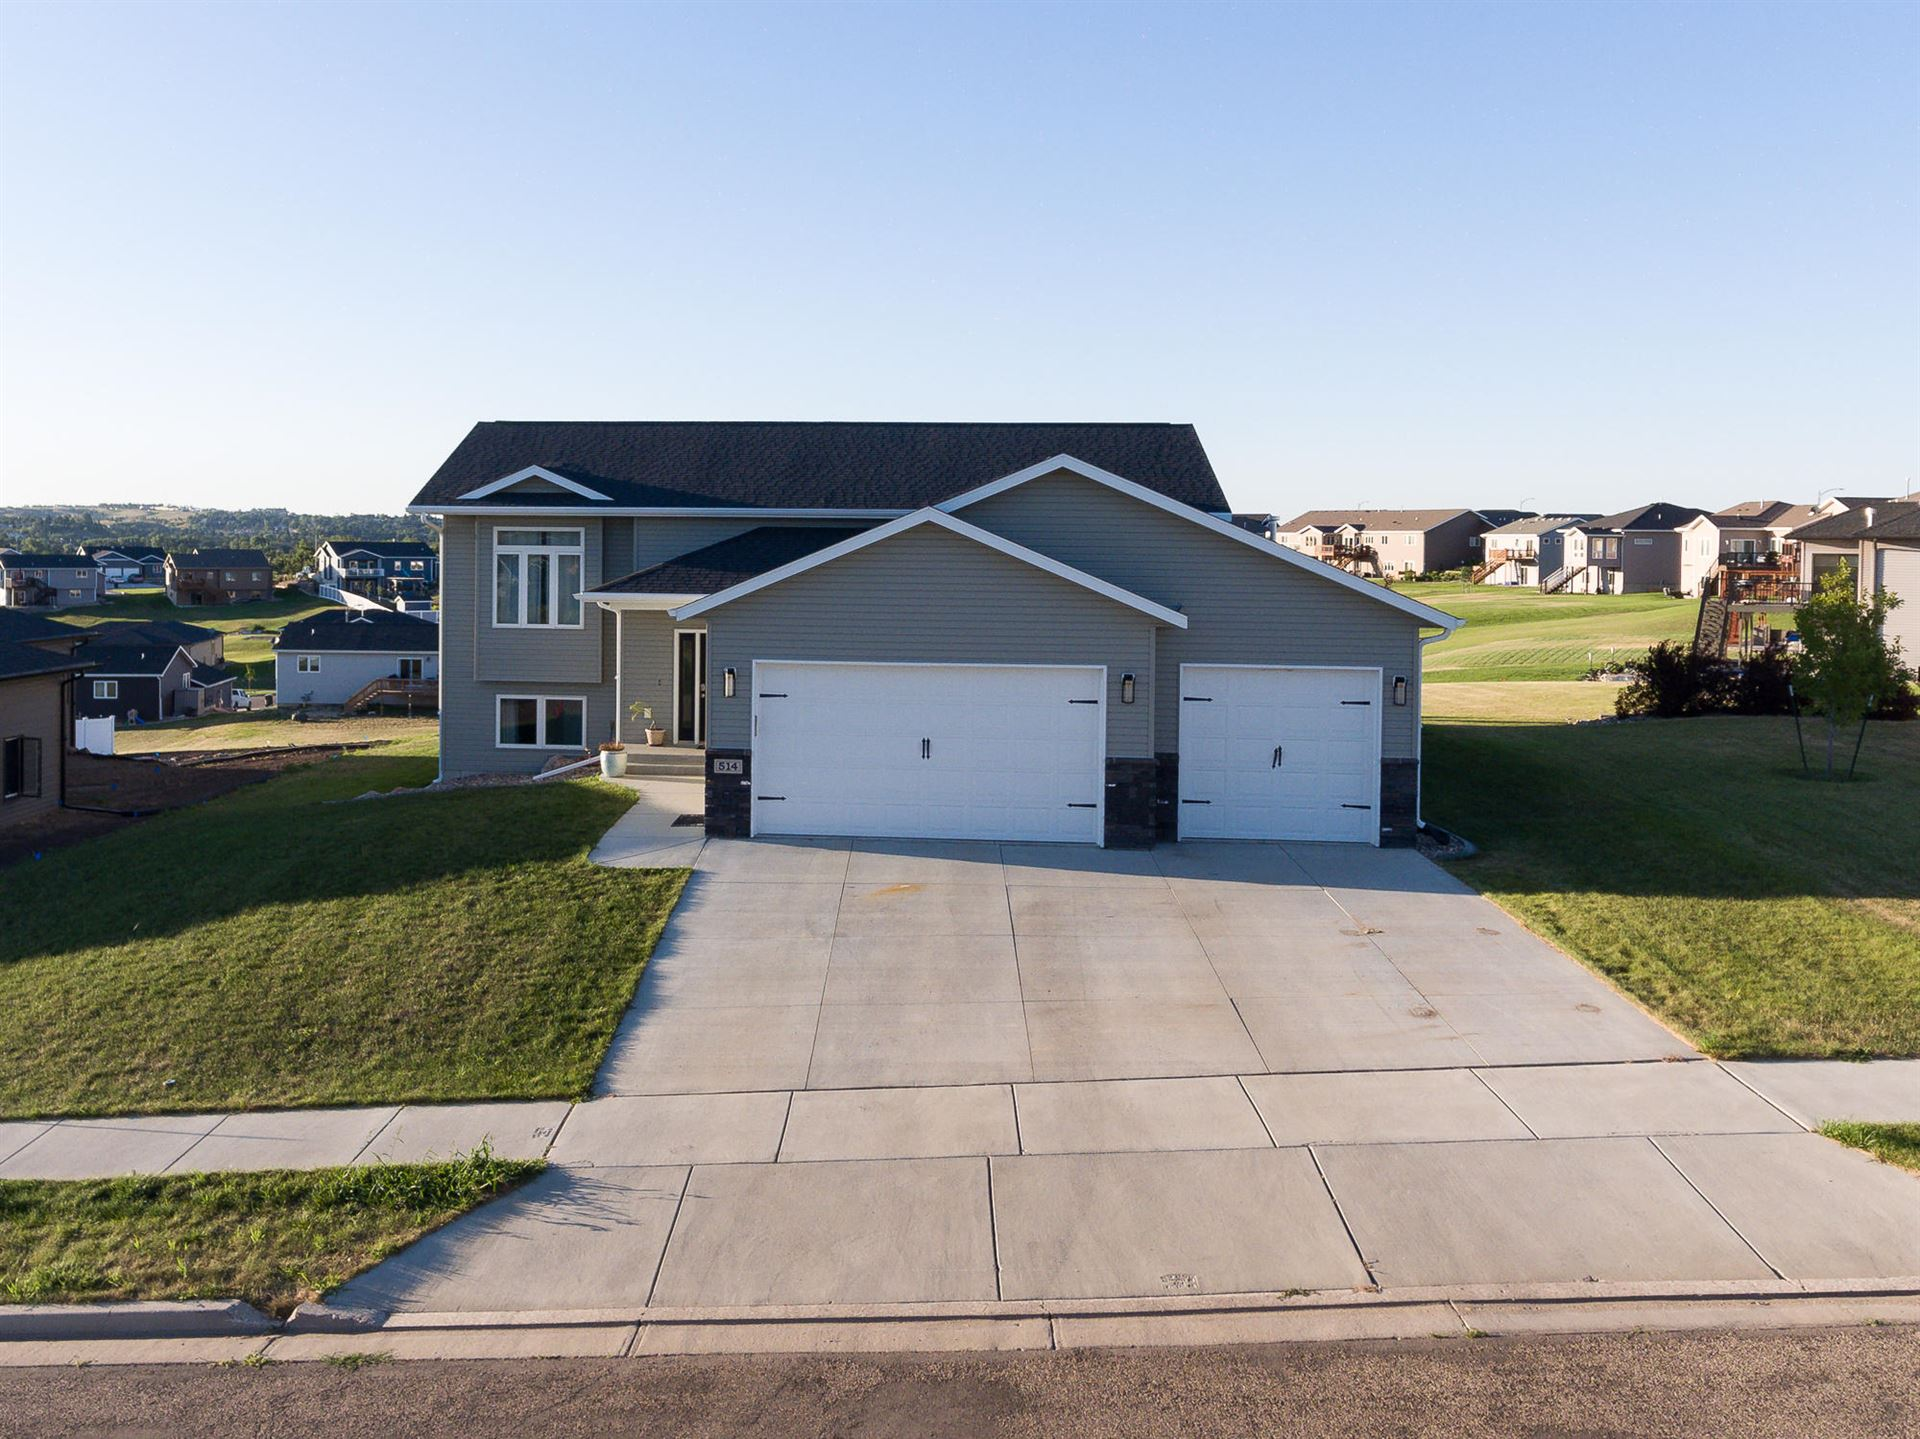 514 18th Street SE, Mandan, ND 58554 - #: 407965